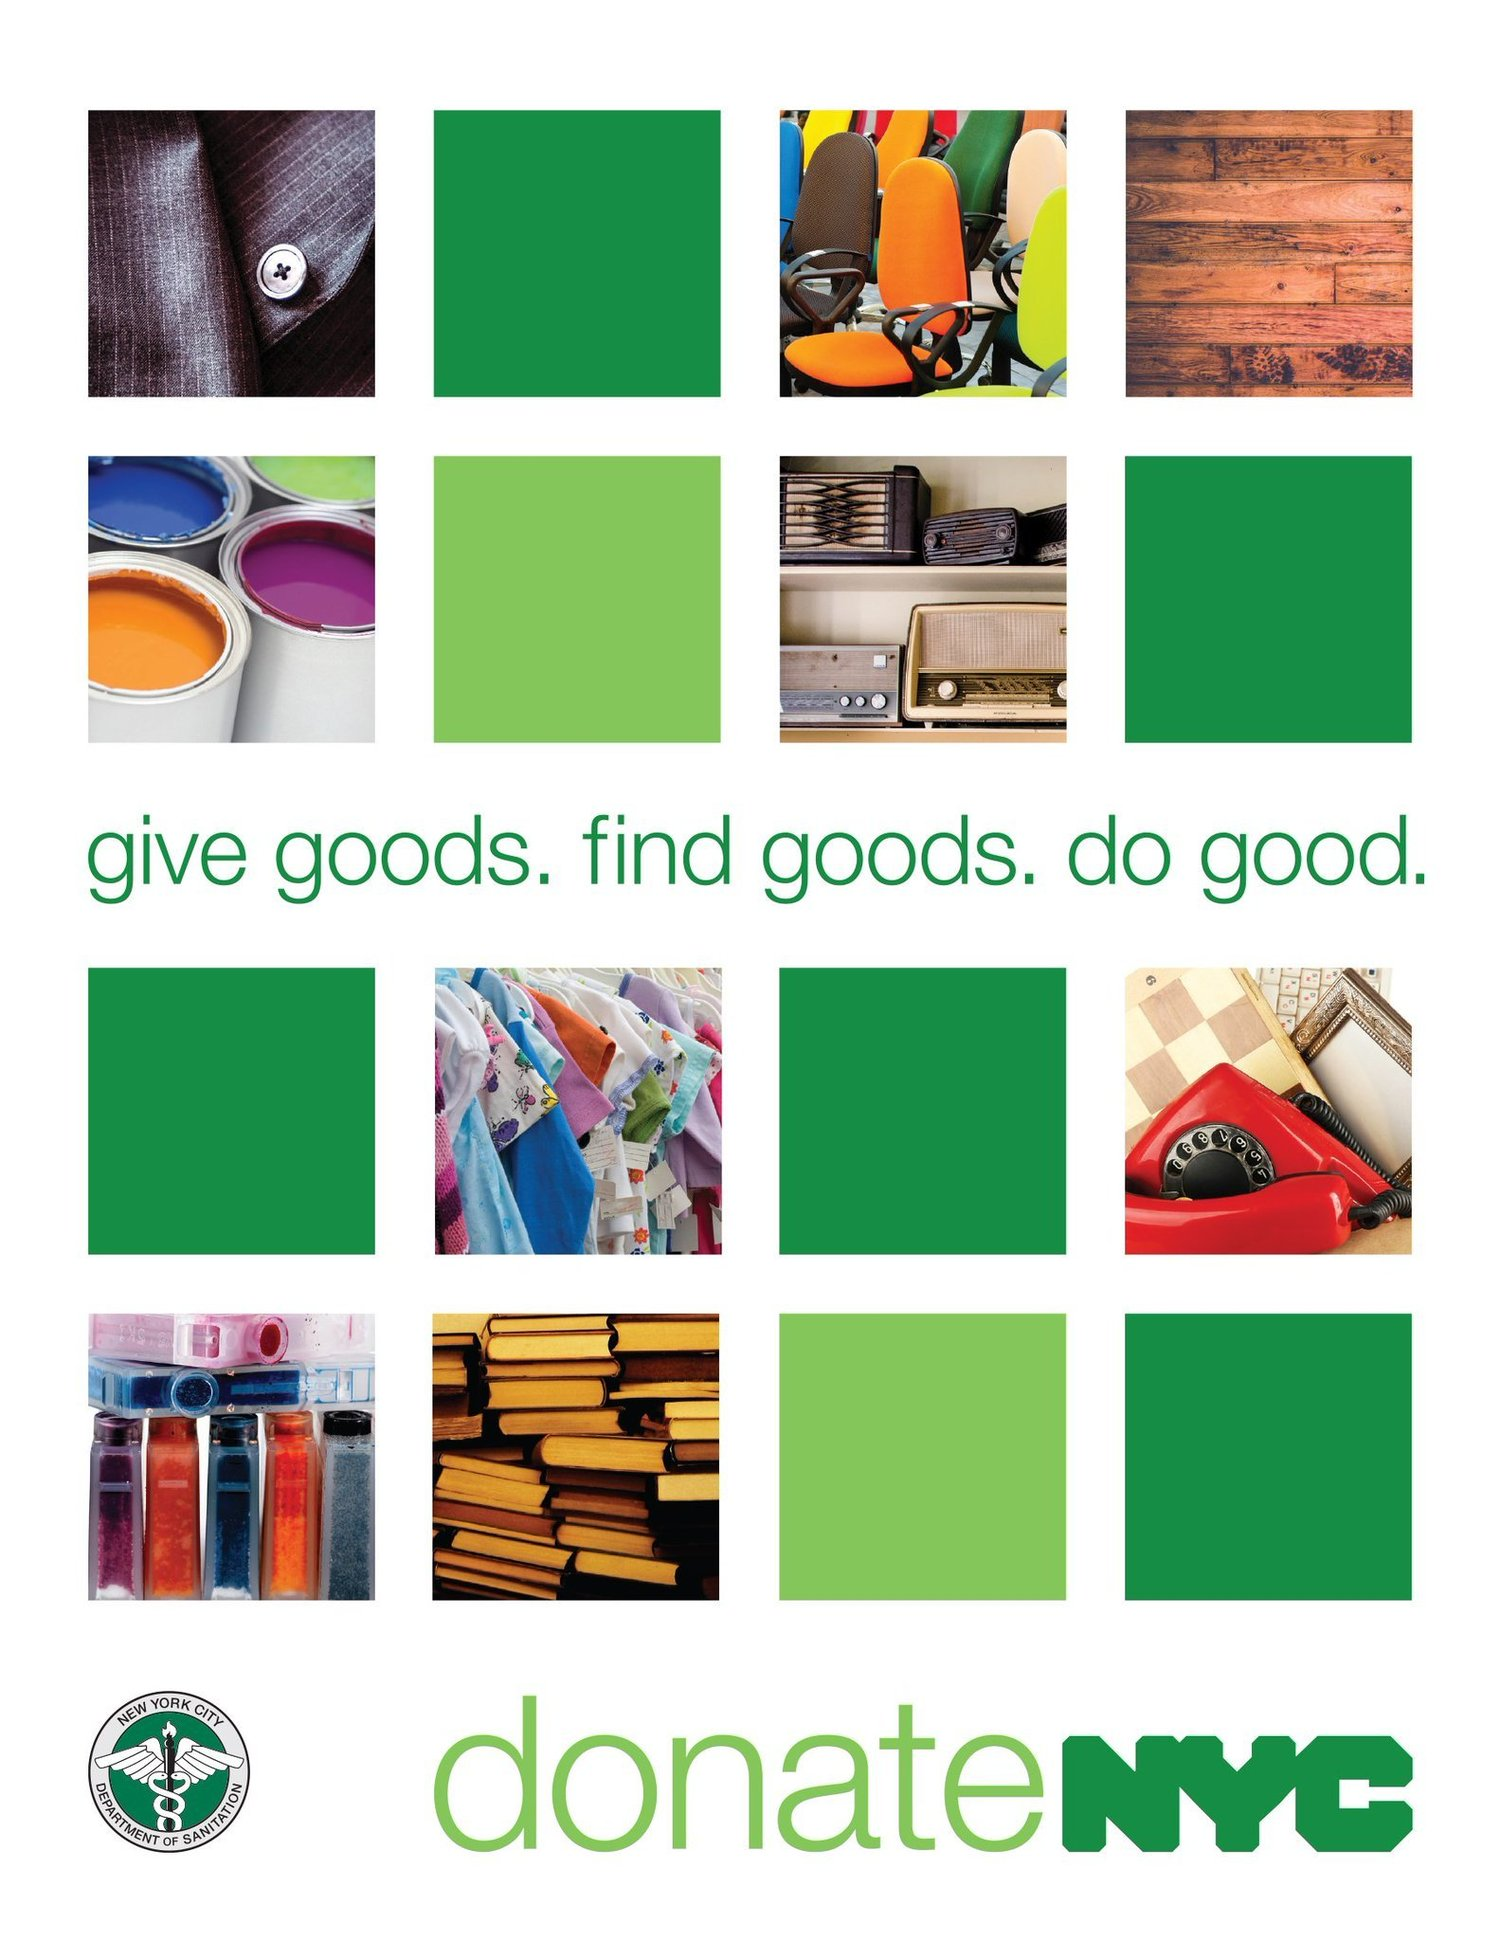 give goods. find goods. do good. donateNYC